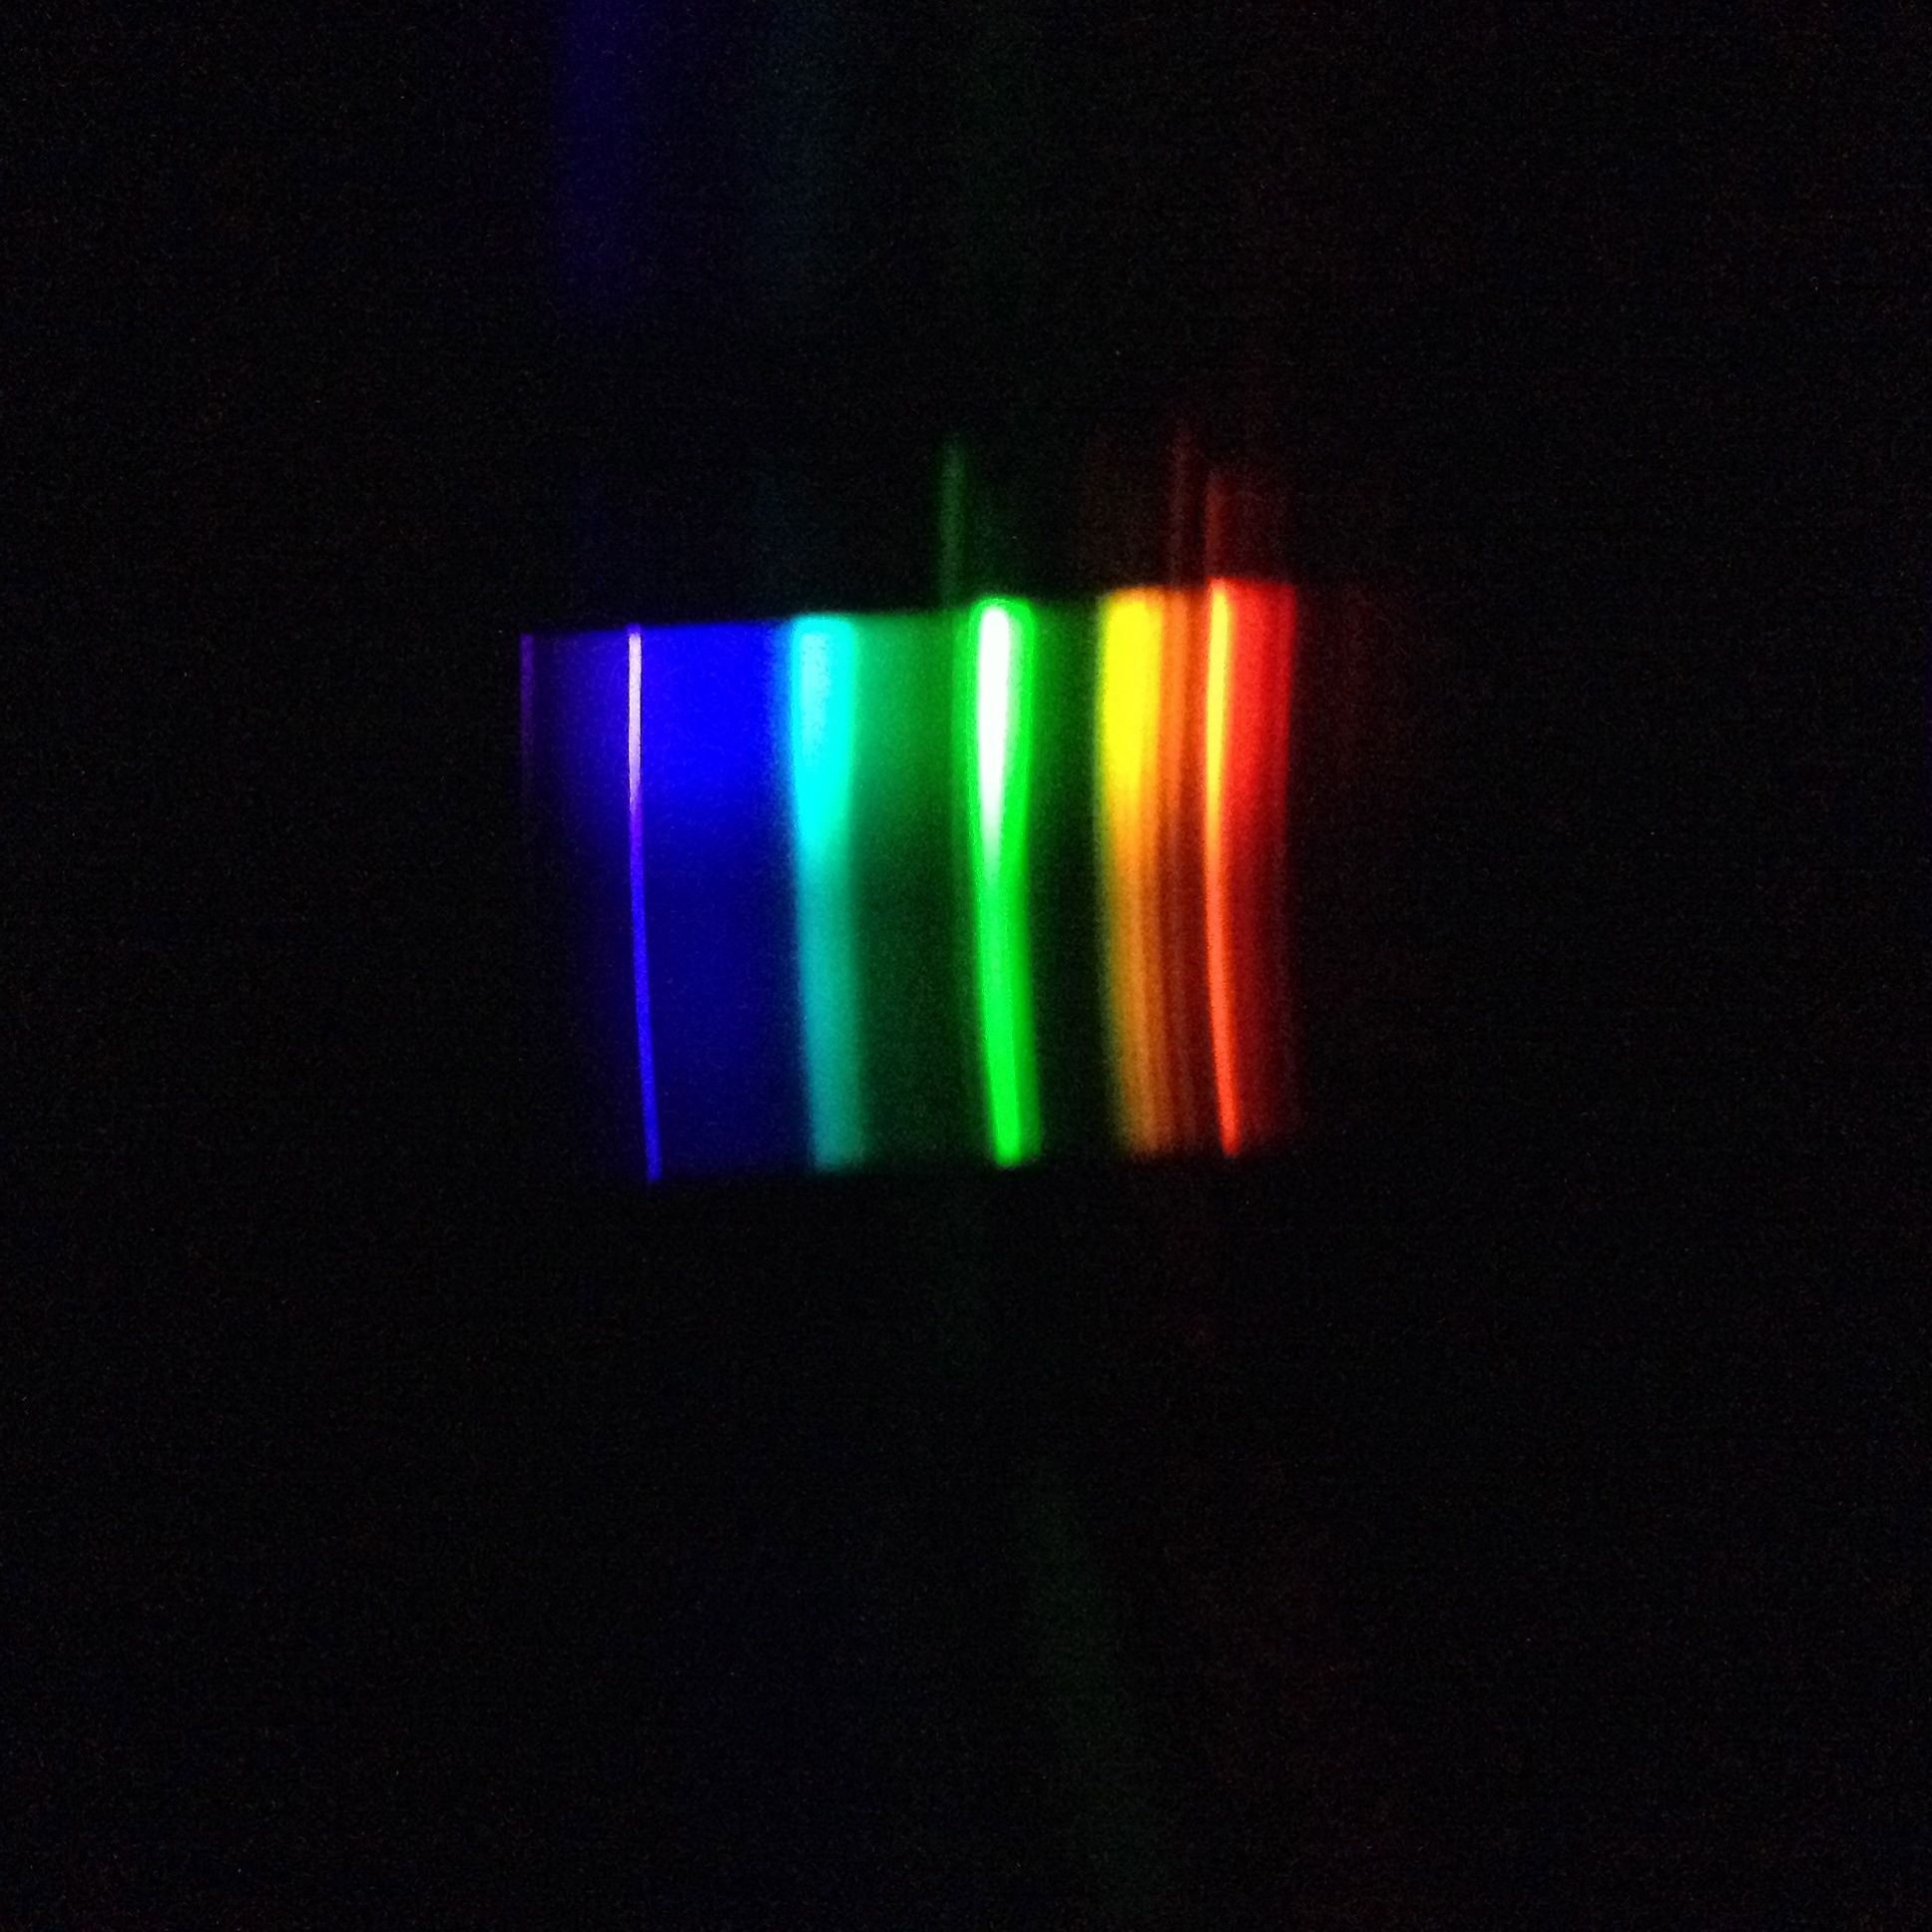 Fluorescent Light Frequency: Public Lab: Calibrating Spectrometers From Fluorescent